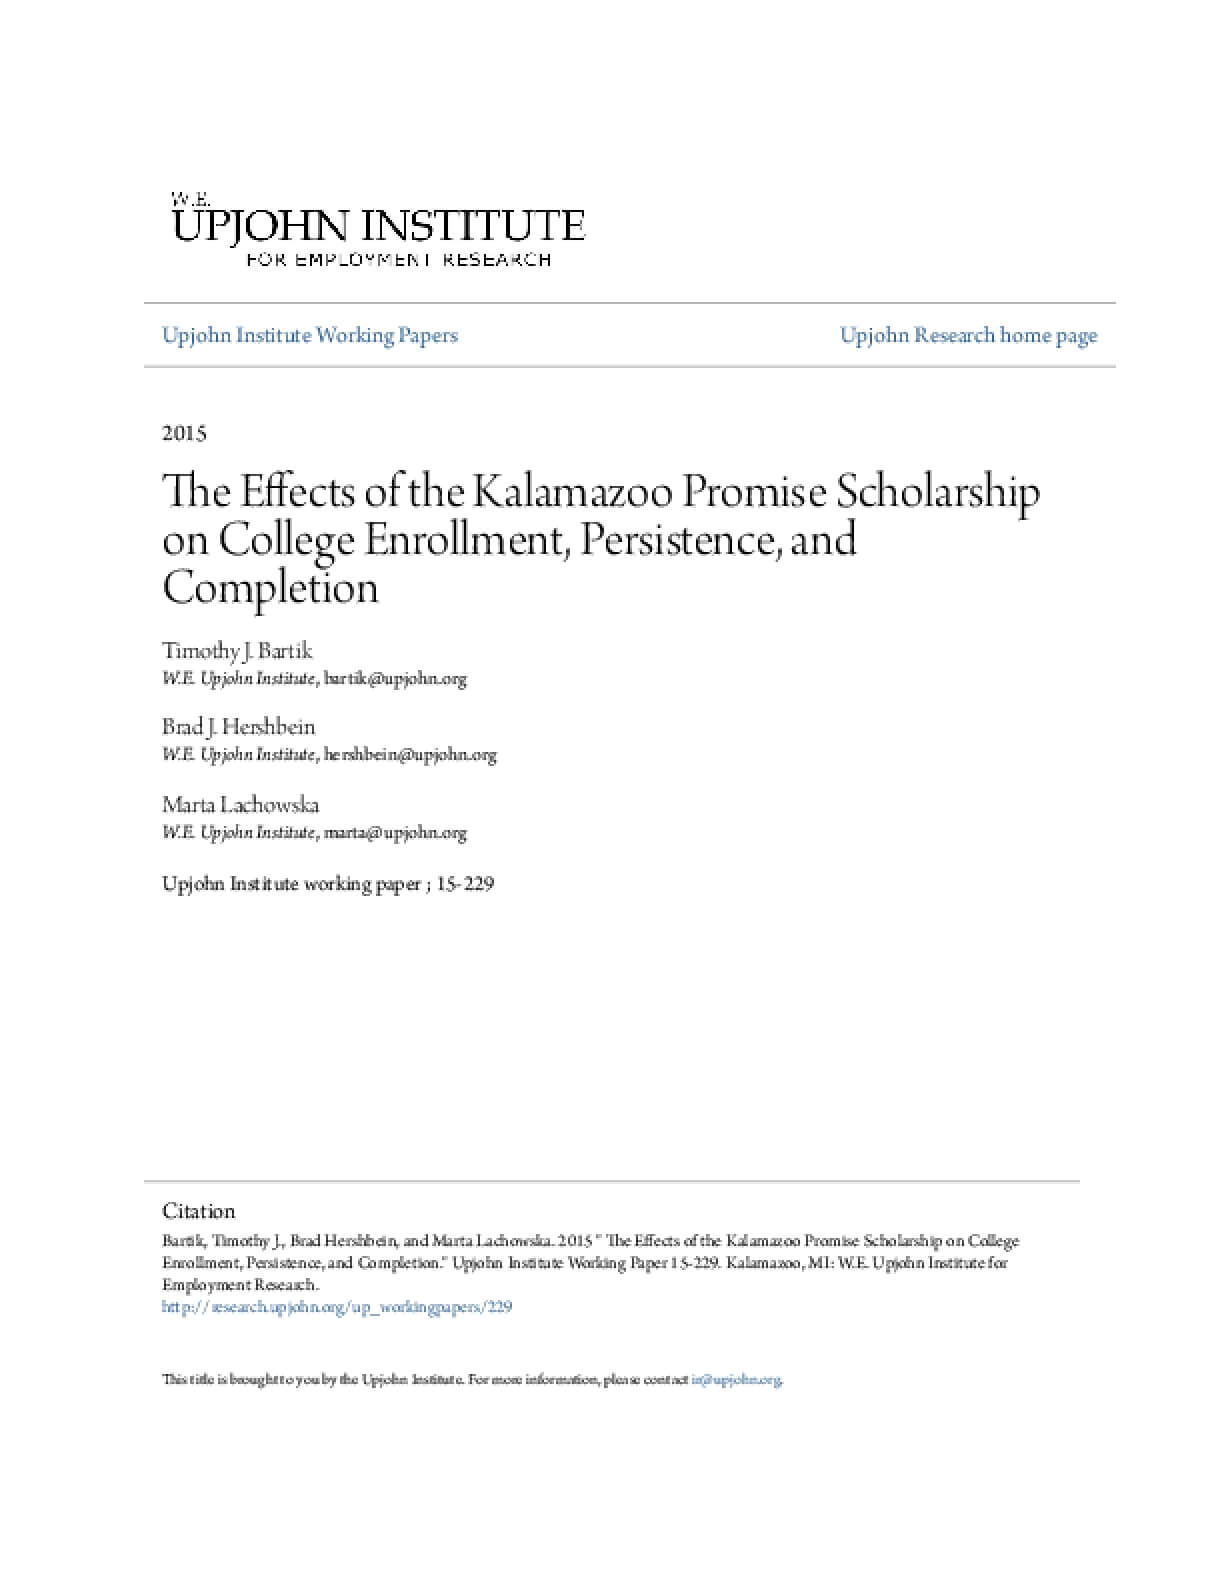 The Effects of the Kalamazoo Promise Scholarship on College Enrollment, Persistence, and Completion